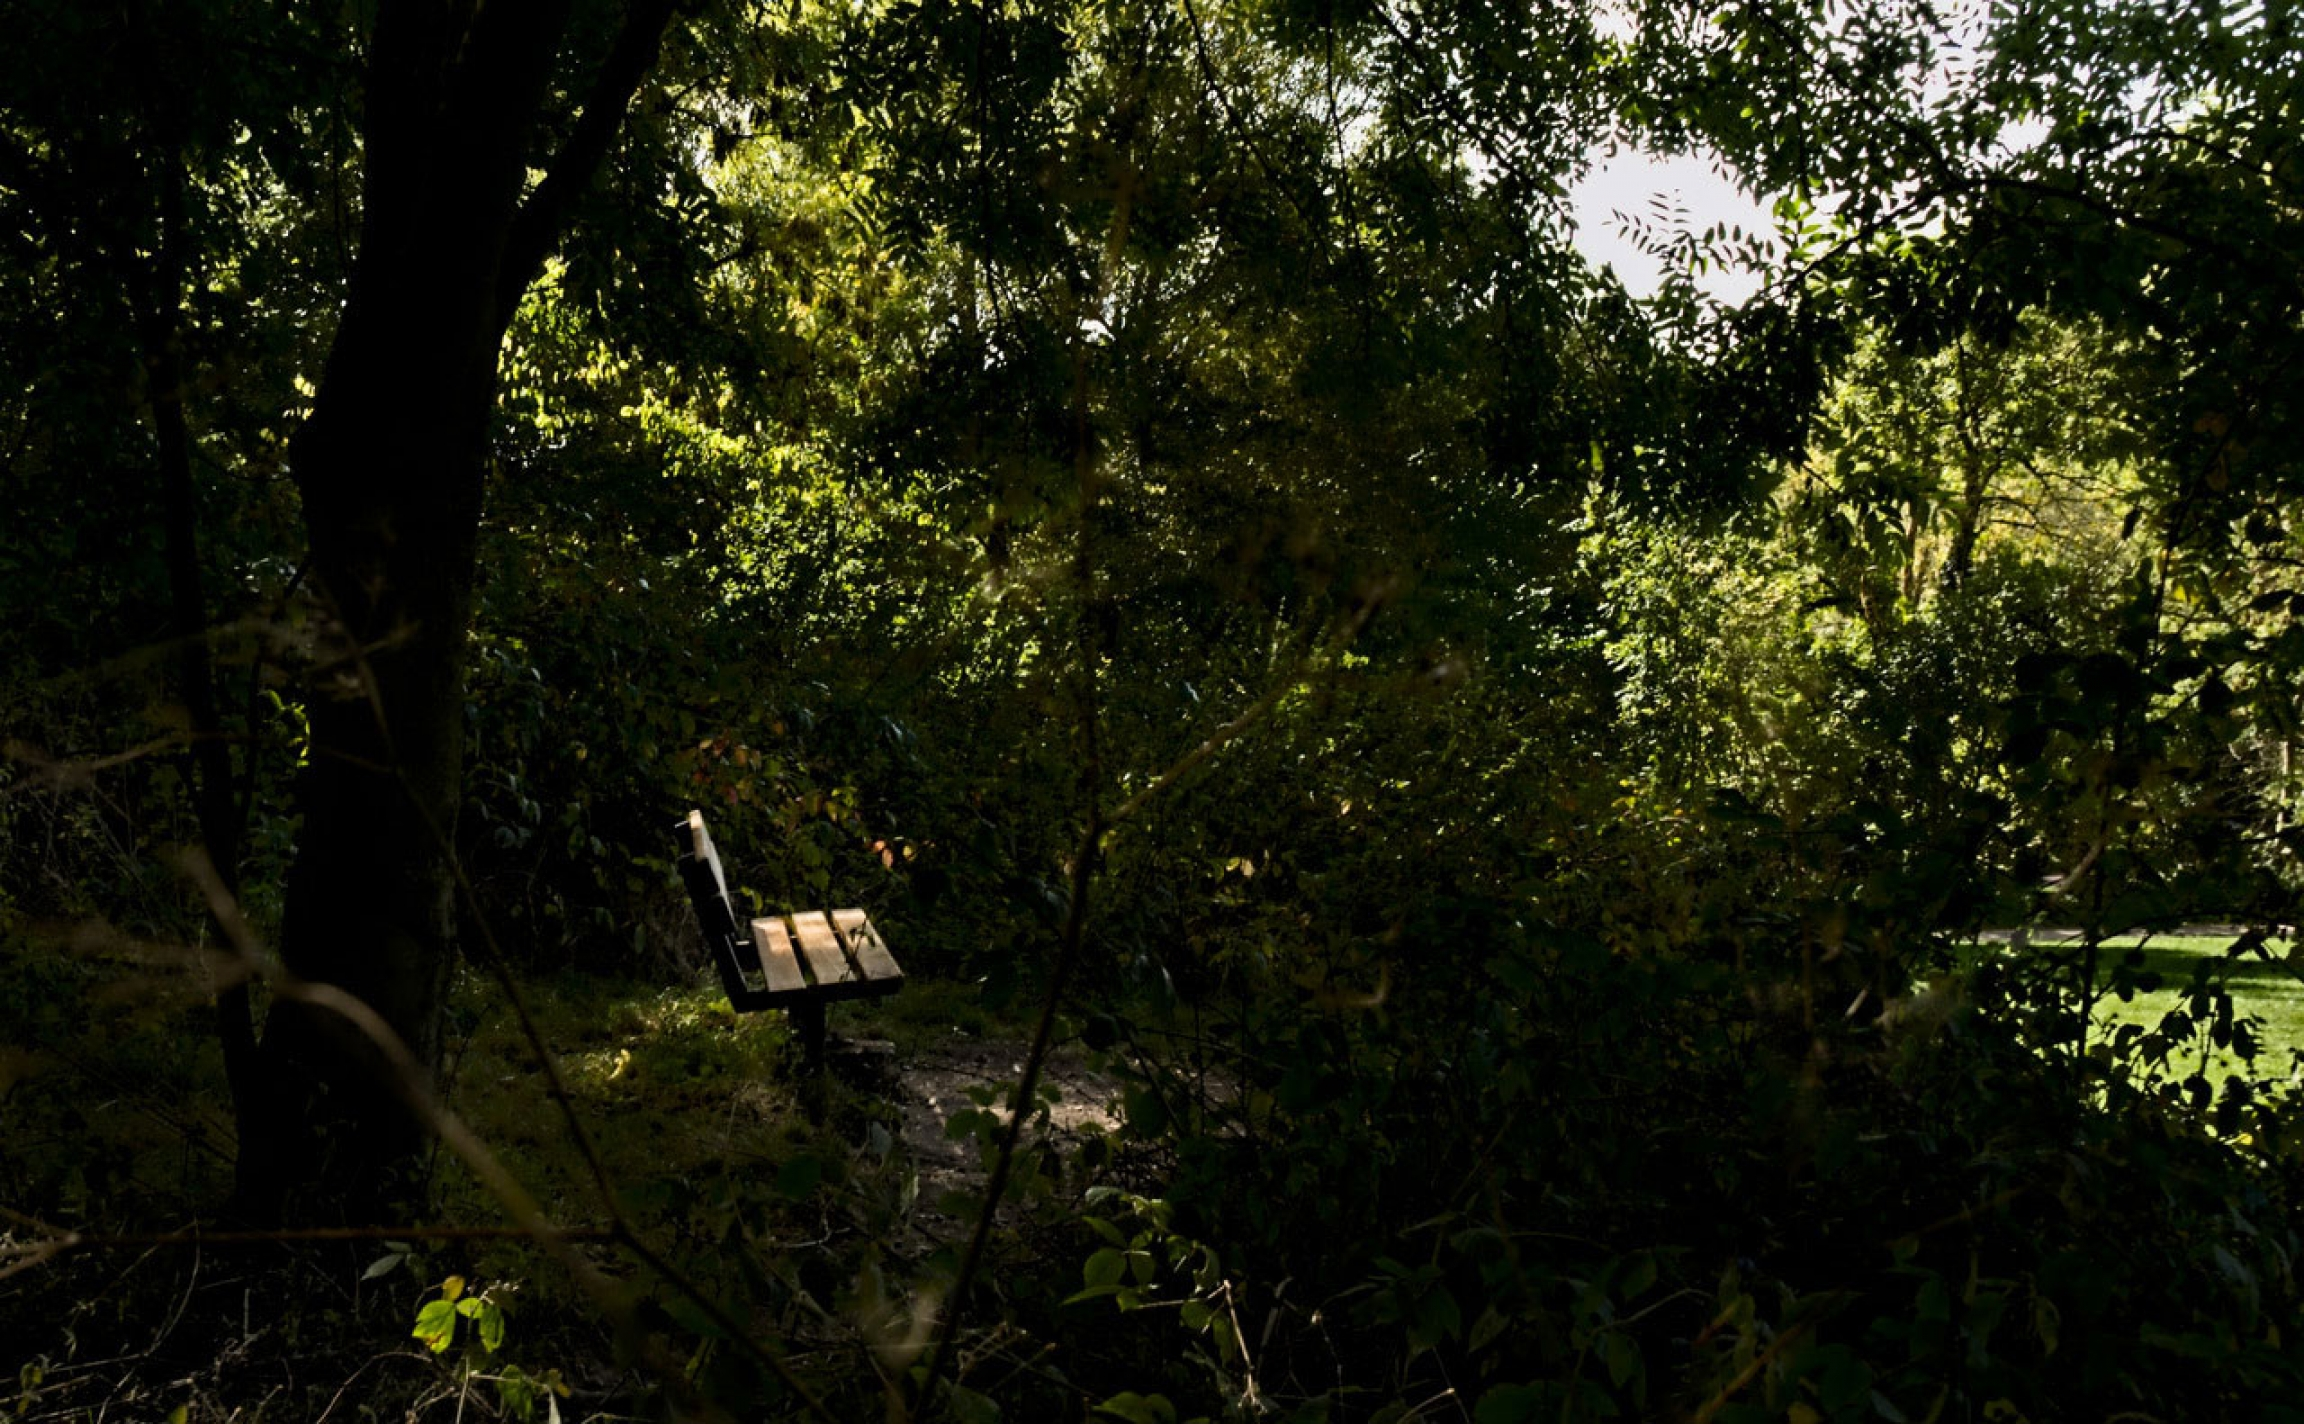 A single wooden bench is shown surrounded by trees and looking out to where bright light is showning.